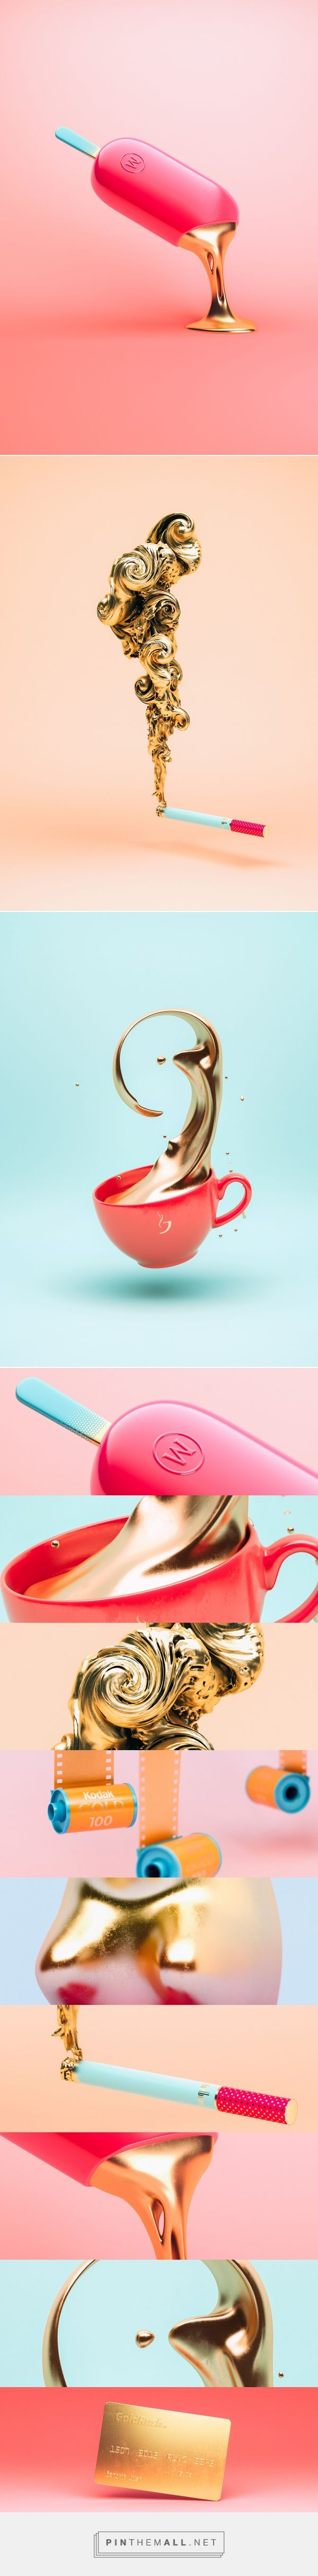 GoldRush on Behance... - a grouped images picture - Pin Them All #IceCream #BuffaloBucksCoffee